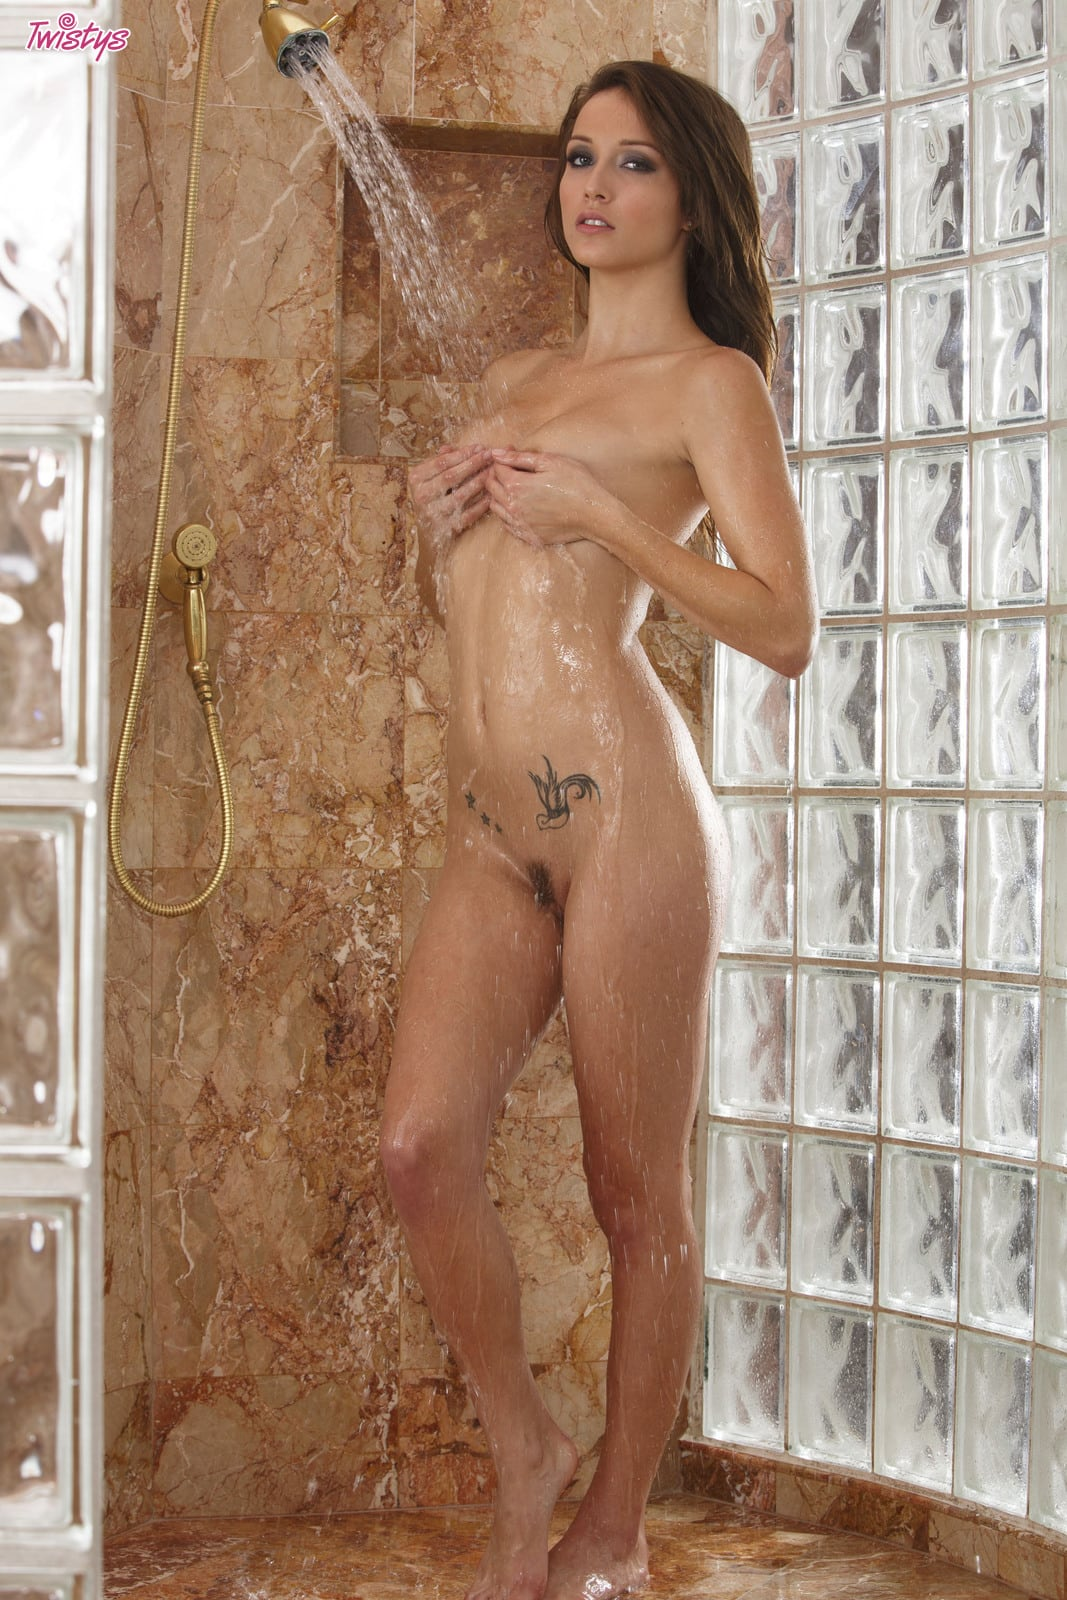 Malena Morgan enjoys a shower and shows her pussy